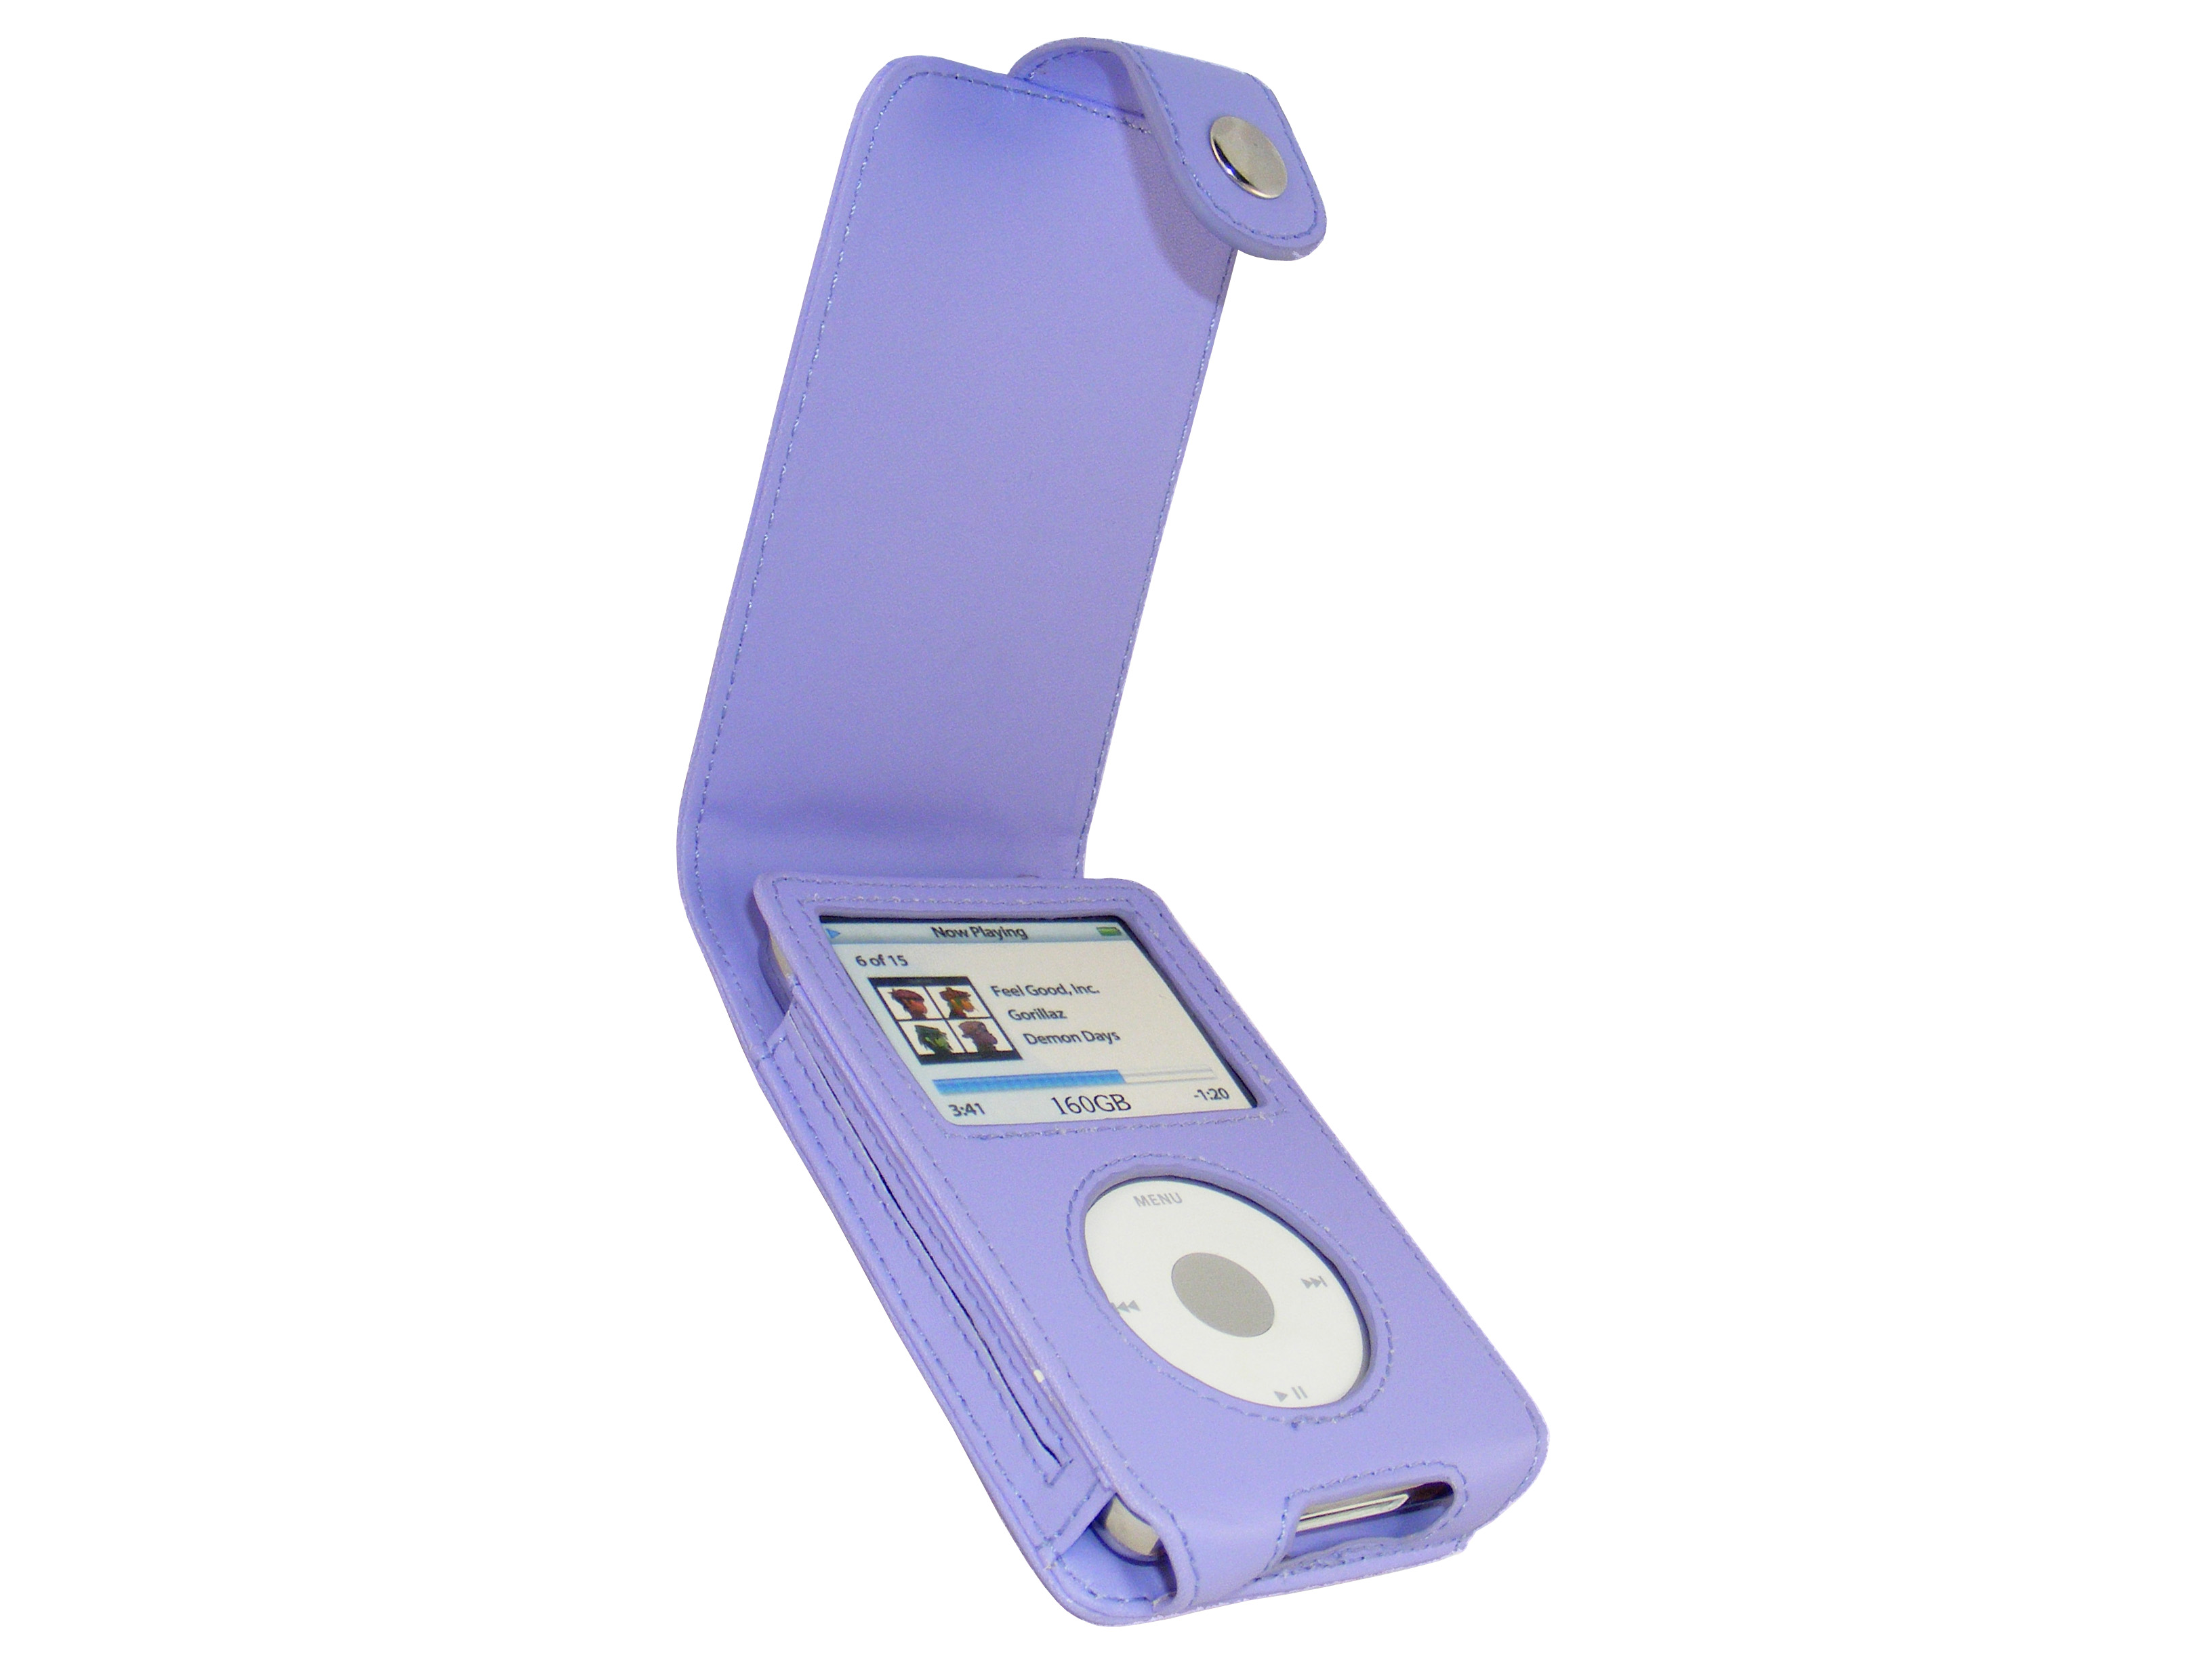 iGadgitz Purple PU Leather Case for Apple iPod Classic 80gb, 120gb & latest 160gb + Belt Clip & Screen Protector